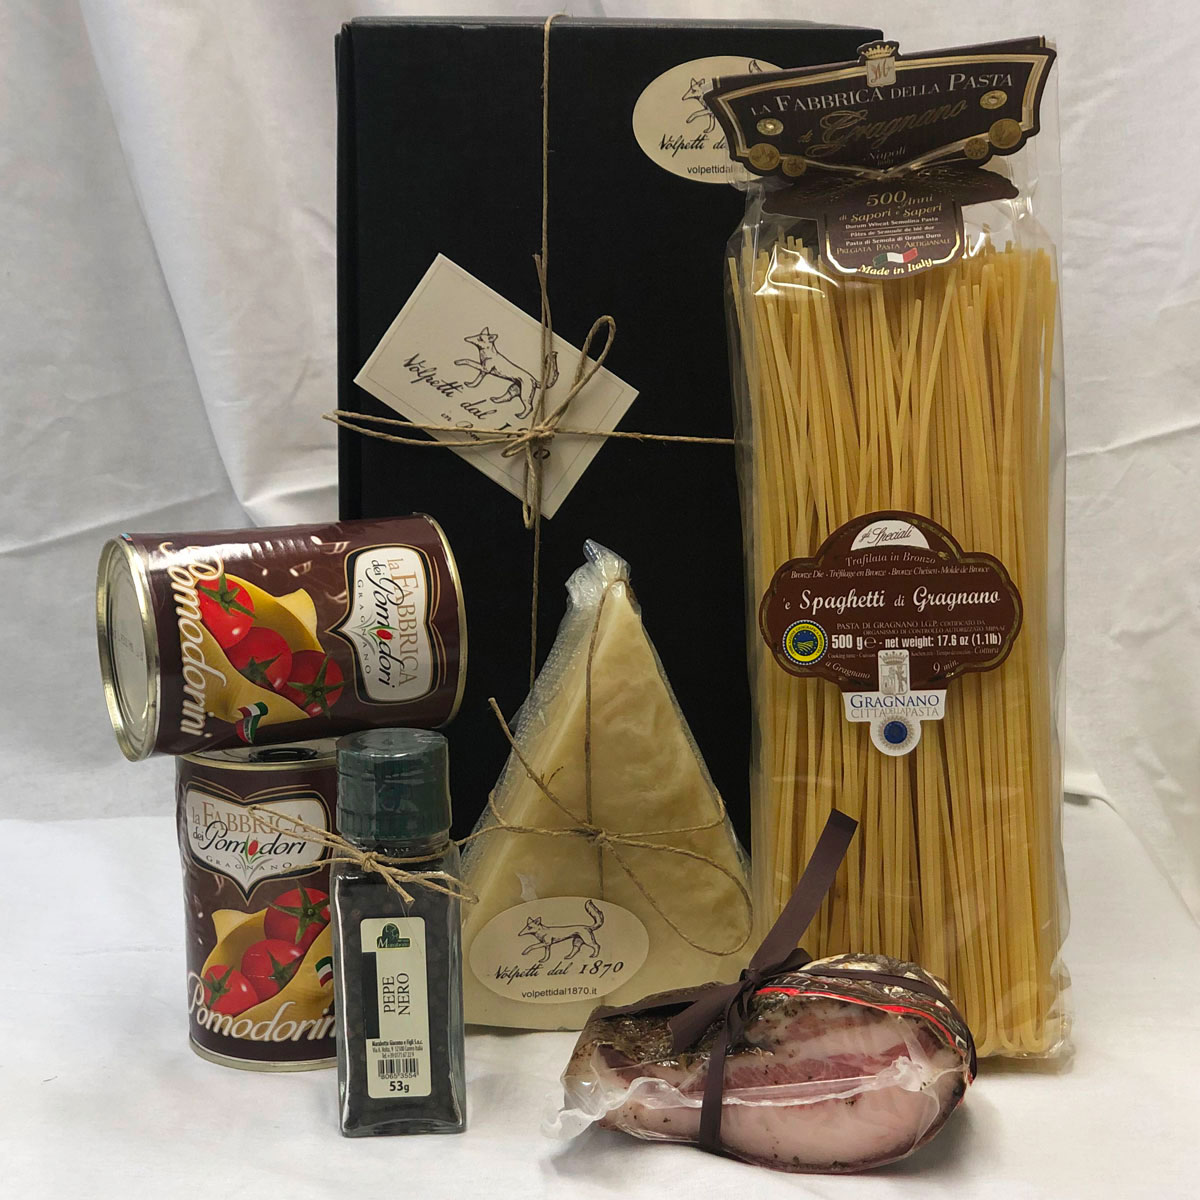 Kit Amatriciana tradizionale comprare on line